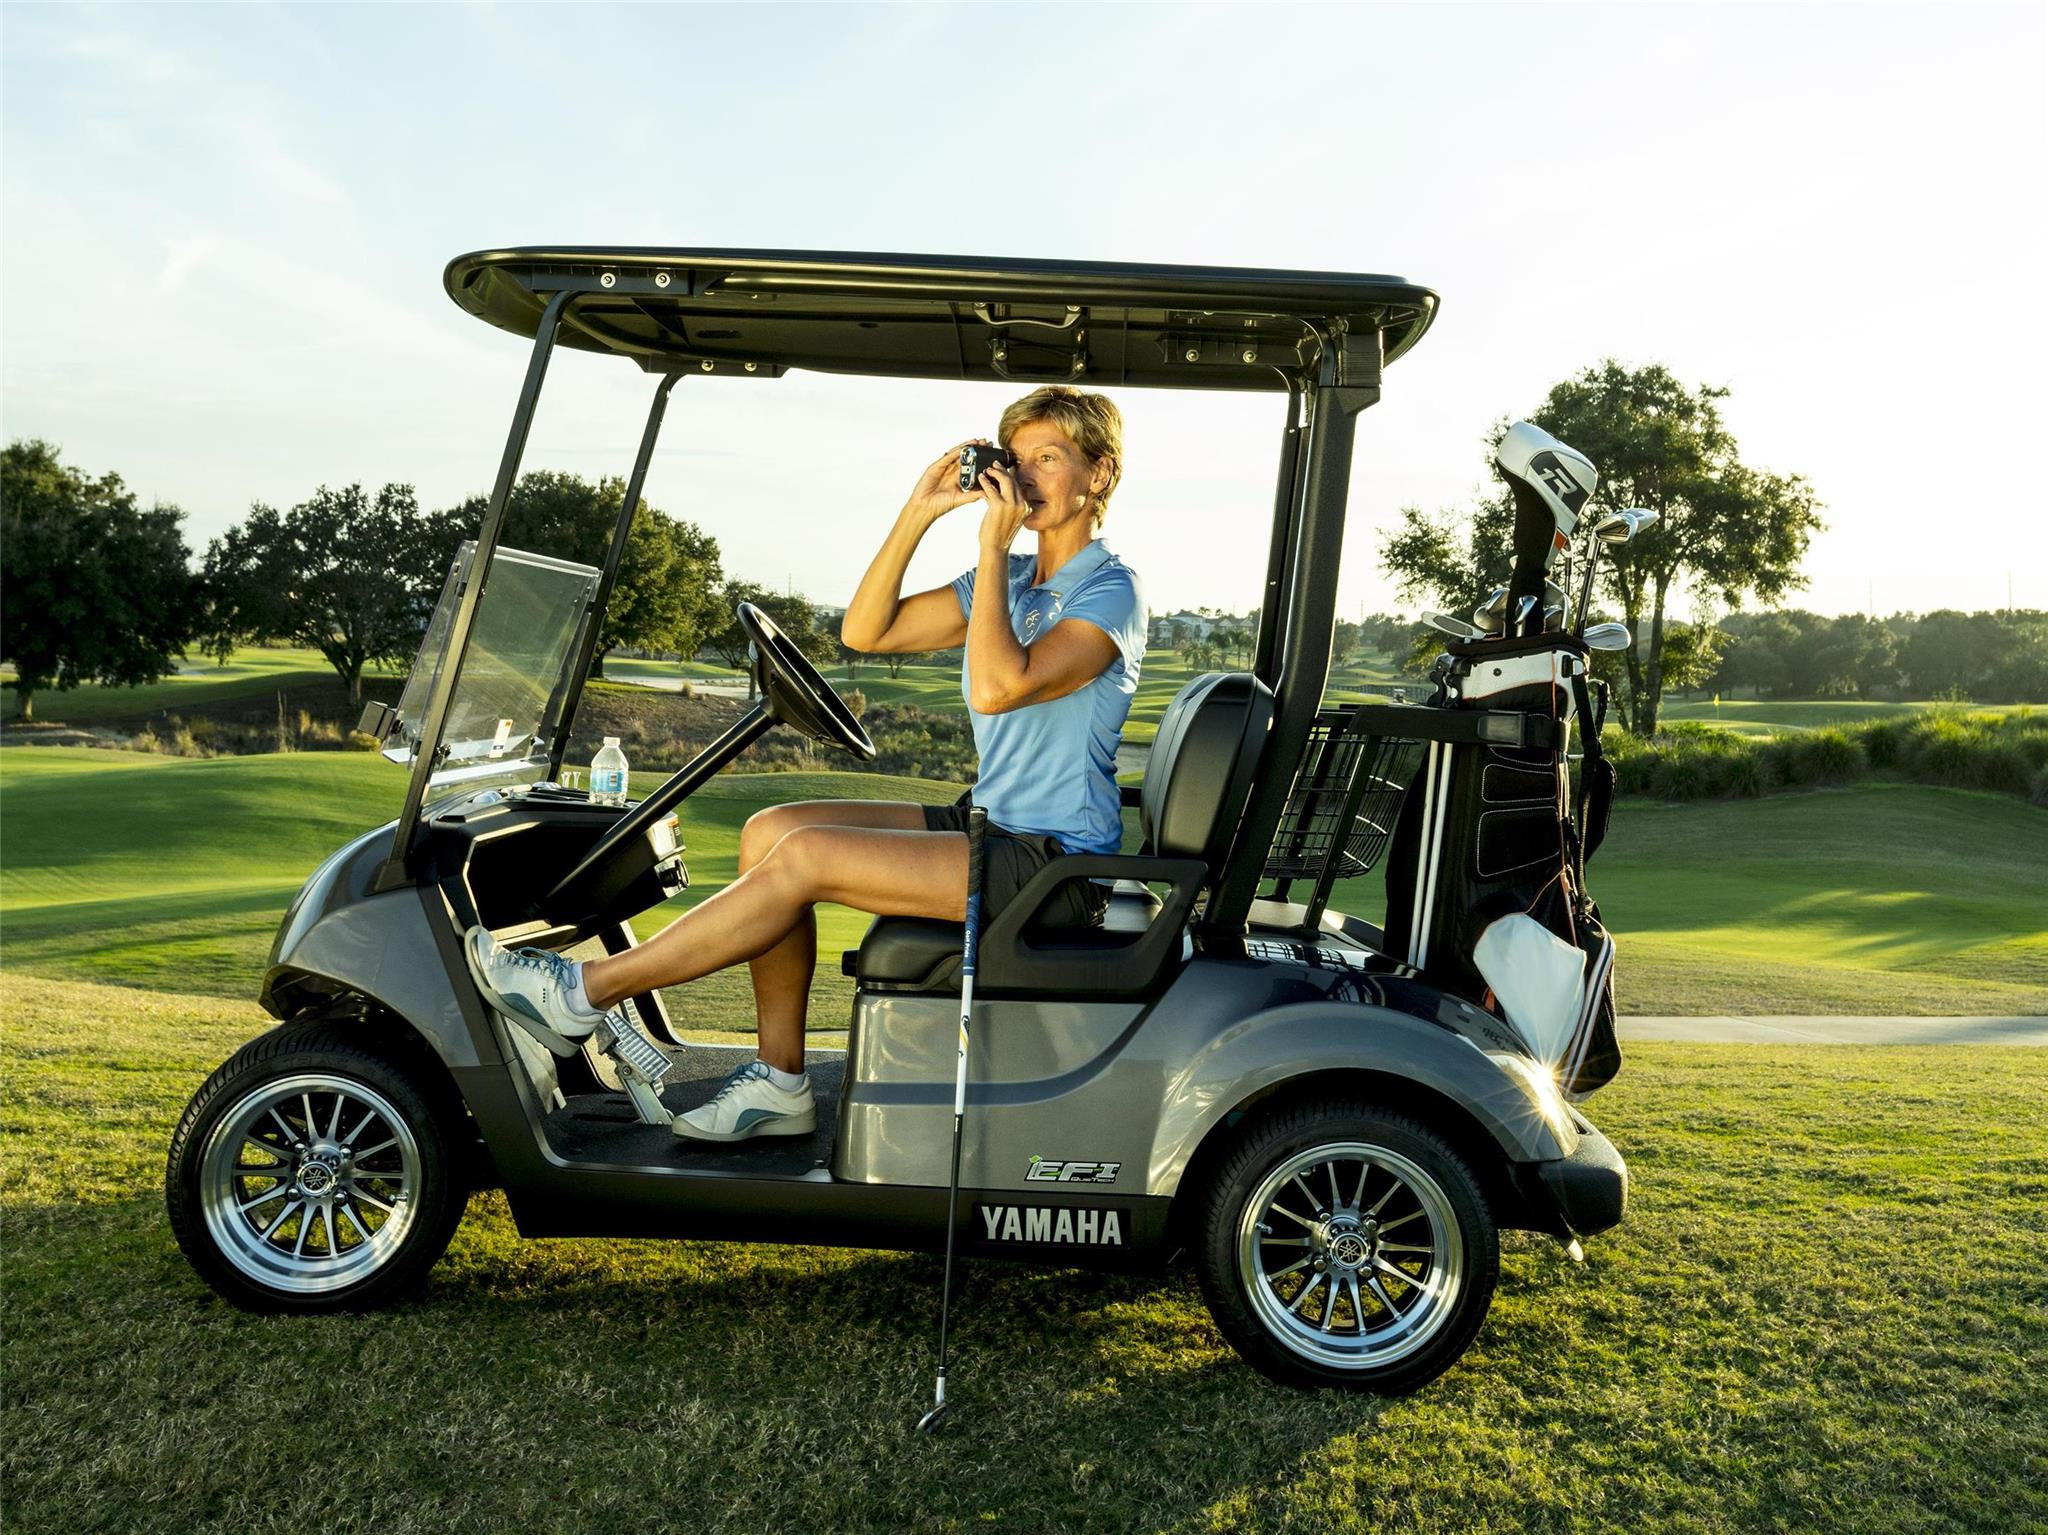 Golf The Drive 2 - Fleet - Yamaha Golf Car Golf Top Cart Framesyamaha on